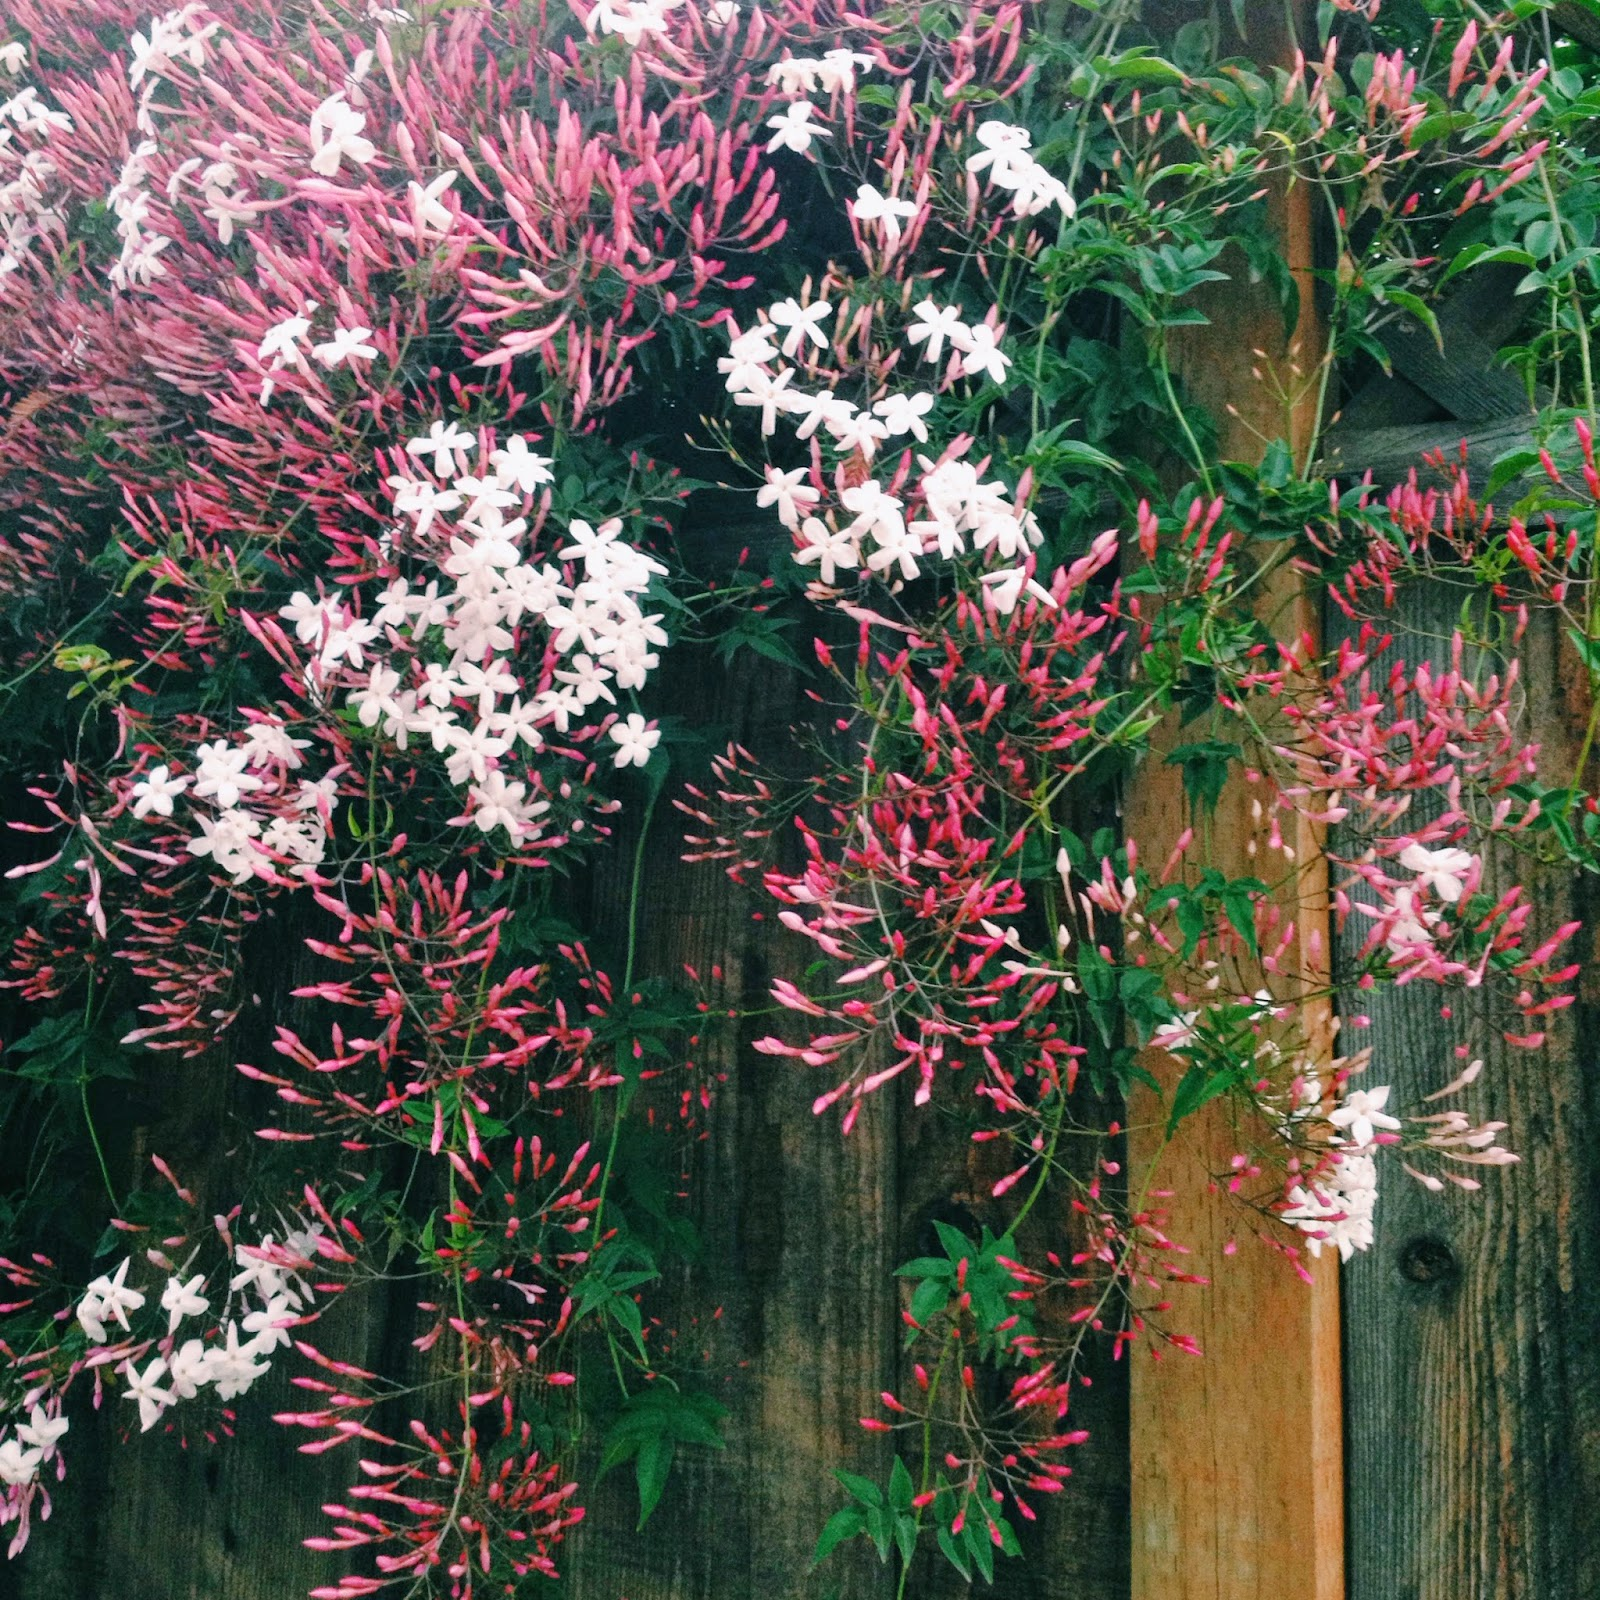 pink flowers along fence